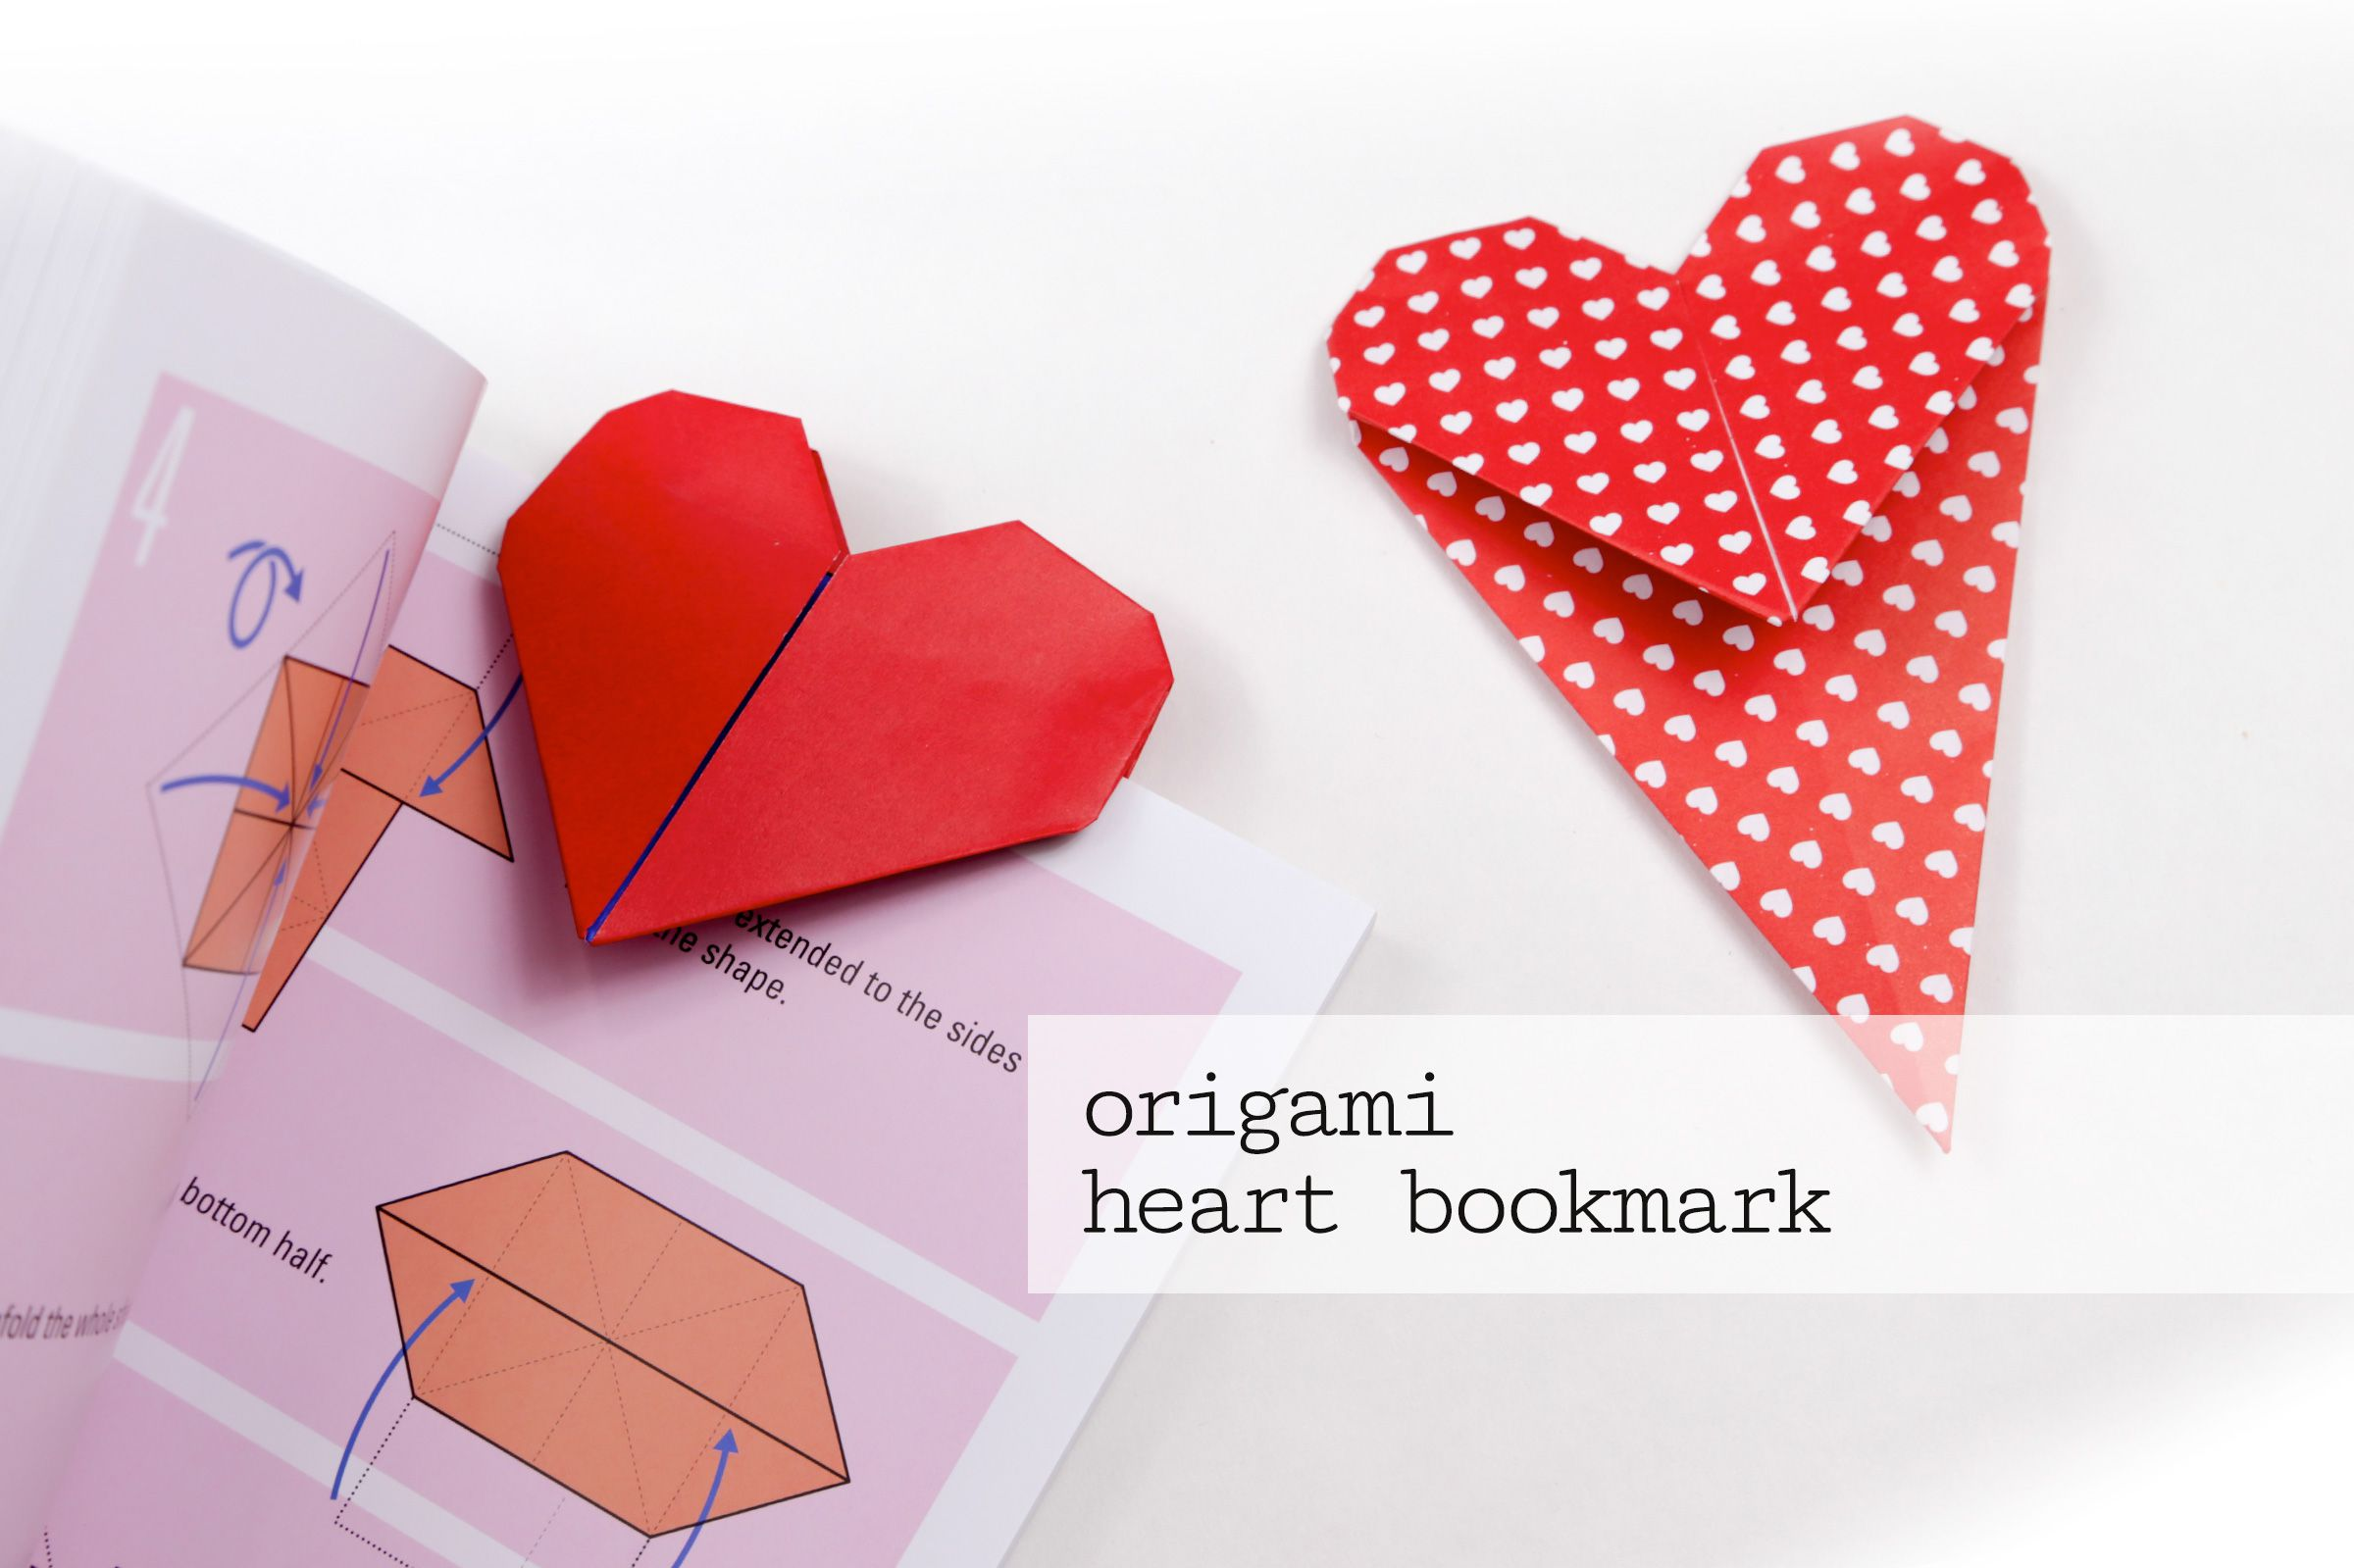 Origami cake box tutorial origami heart bookmark tutorial jeuxipadfo Choice Image